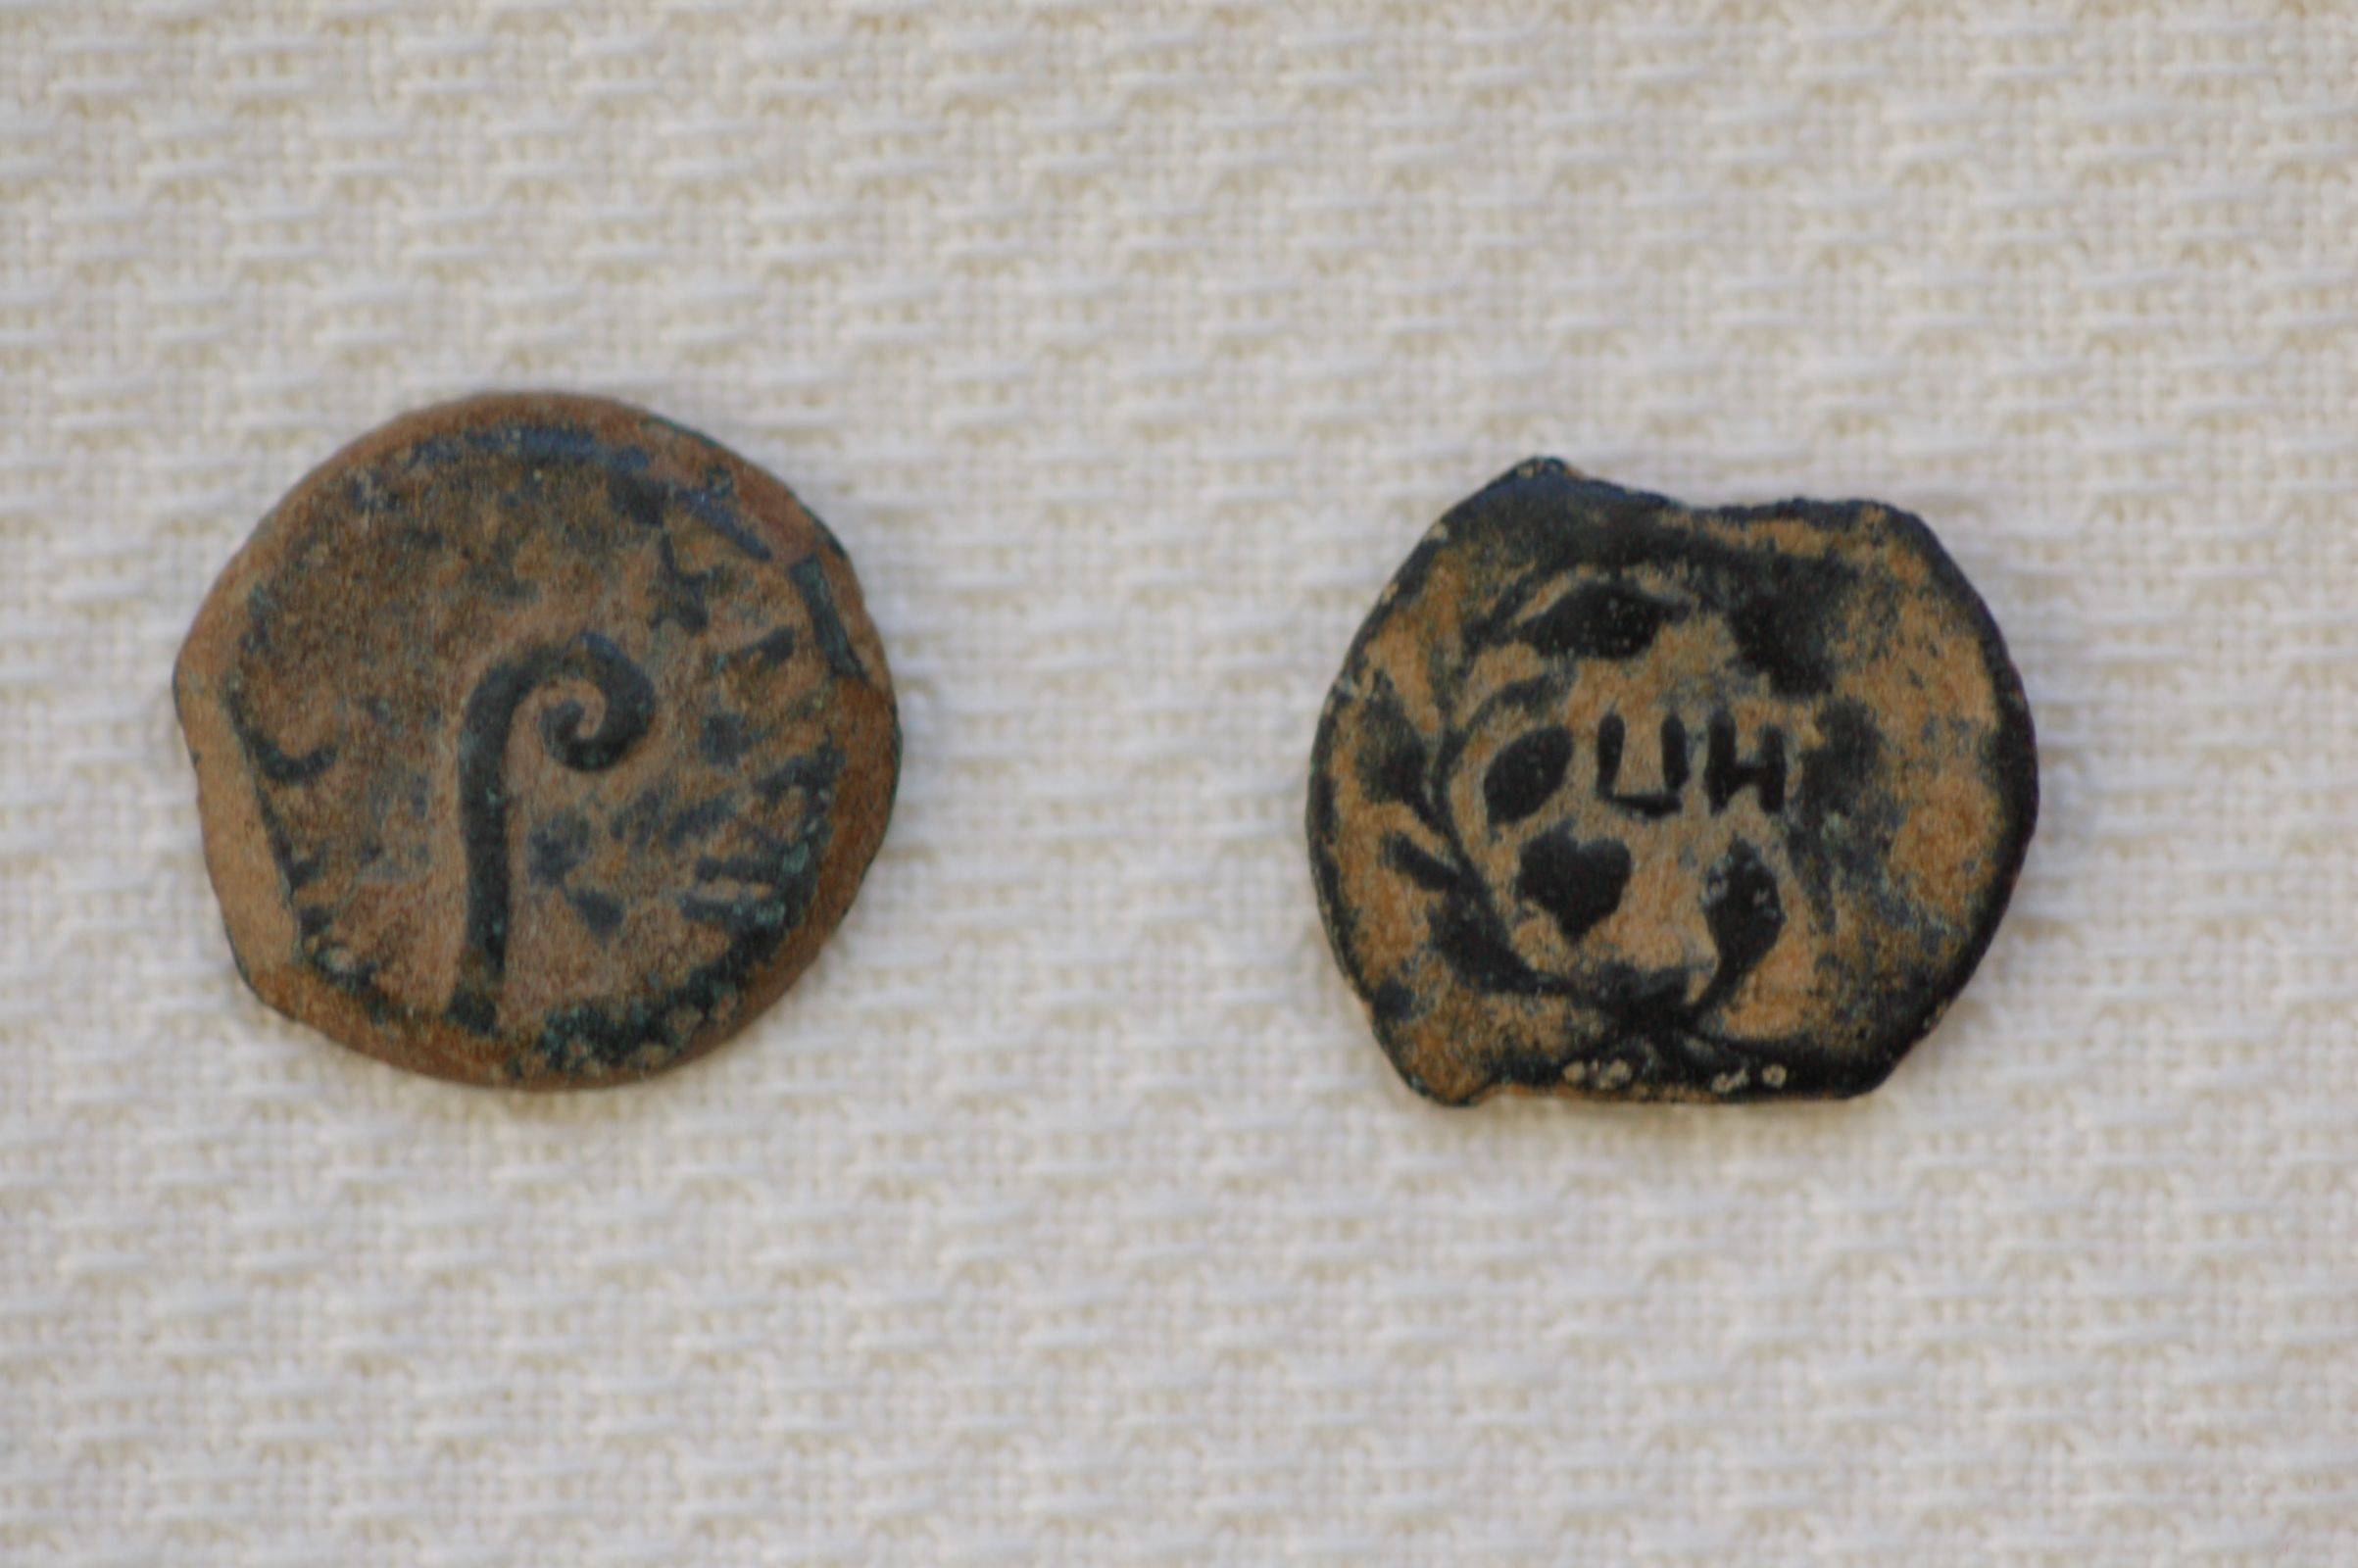 Photo 4. Front and back of lepton with Shepherd´s crook from Soons collection